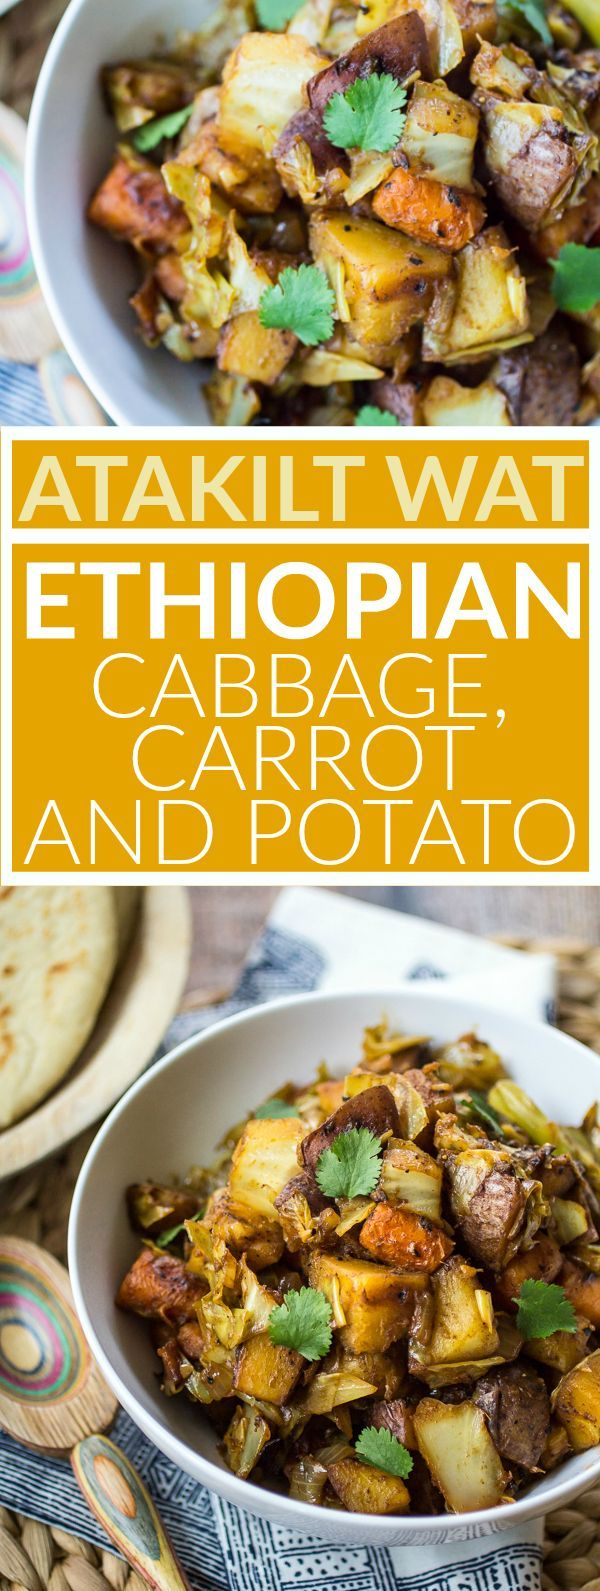 Blue apron lentil spice blend - This Easy Vegan Dish Is One Of My Favorite Parts Of Any Ethiopian Meal Humble